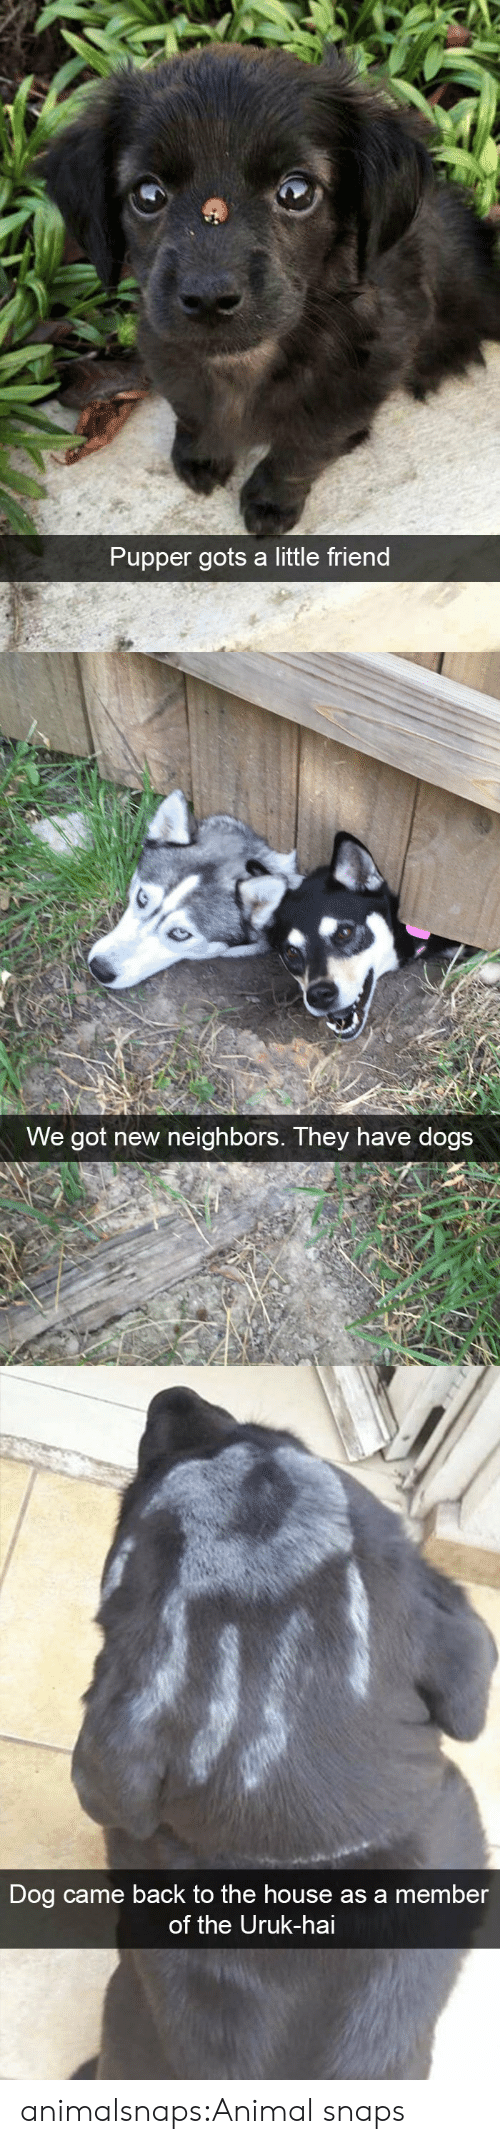 pupper: Pupper gots a little friend   We got new neighbors. They have dogs   Dog came back to the house as a member  of the Uruk-hai animalsnaps:Animal snaps